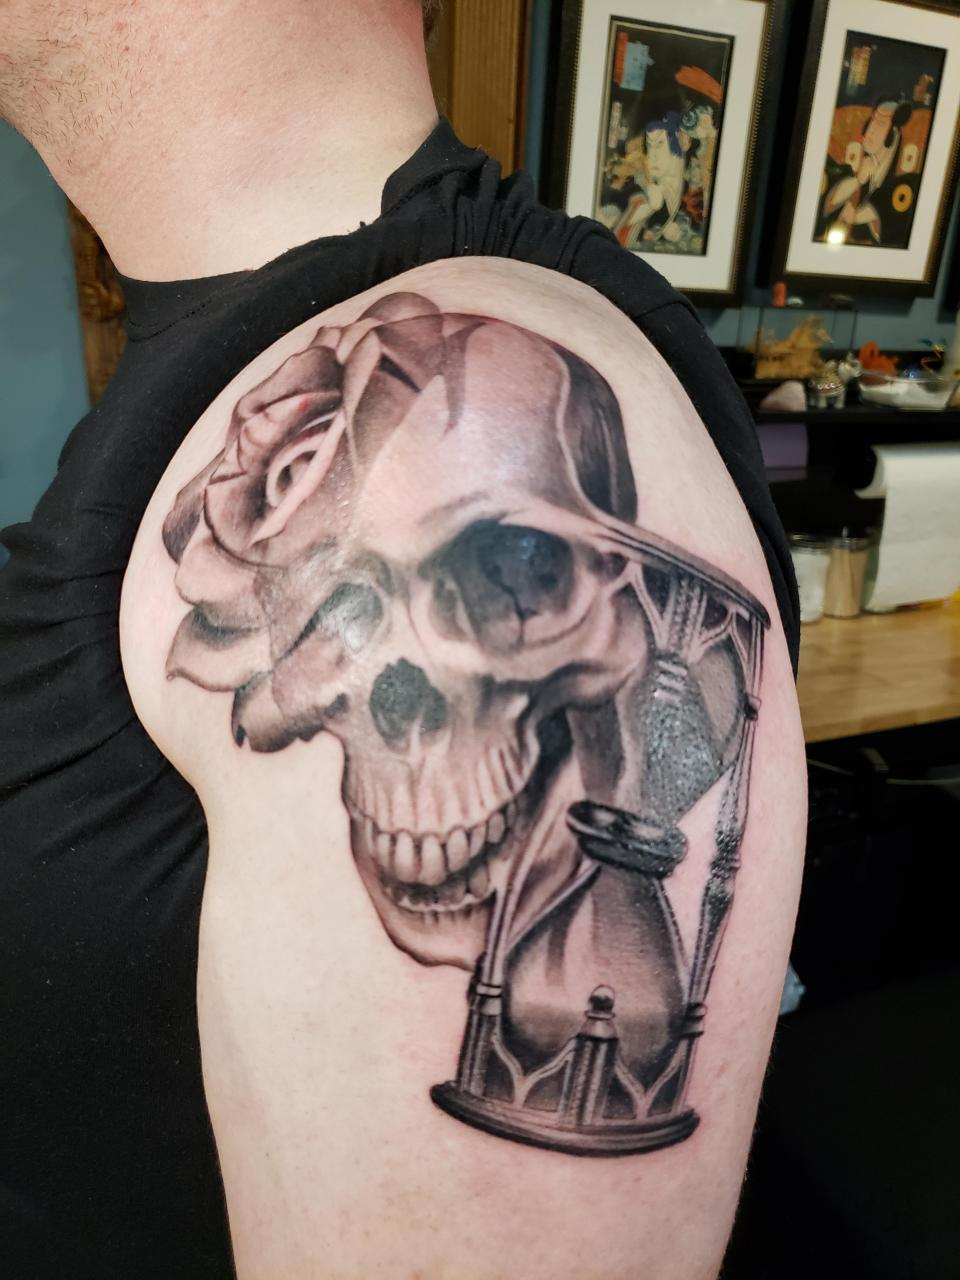 New piece on my left arm. Done by Tim Orth at Leviticus in Minneapolis, MN